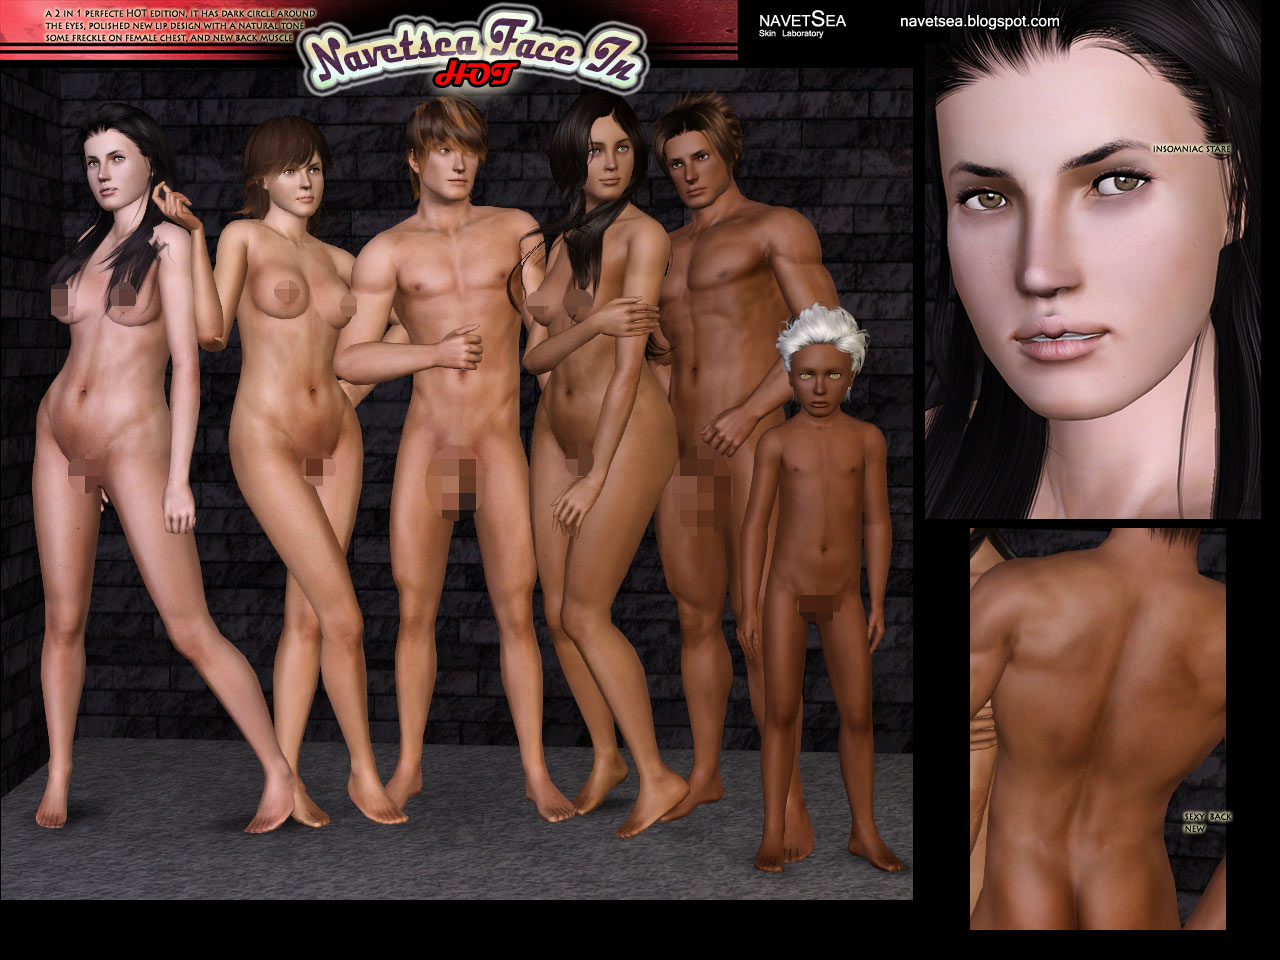 The sims 3 nude female skins hentai wives